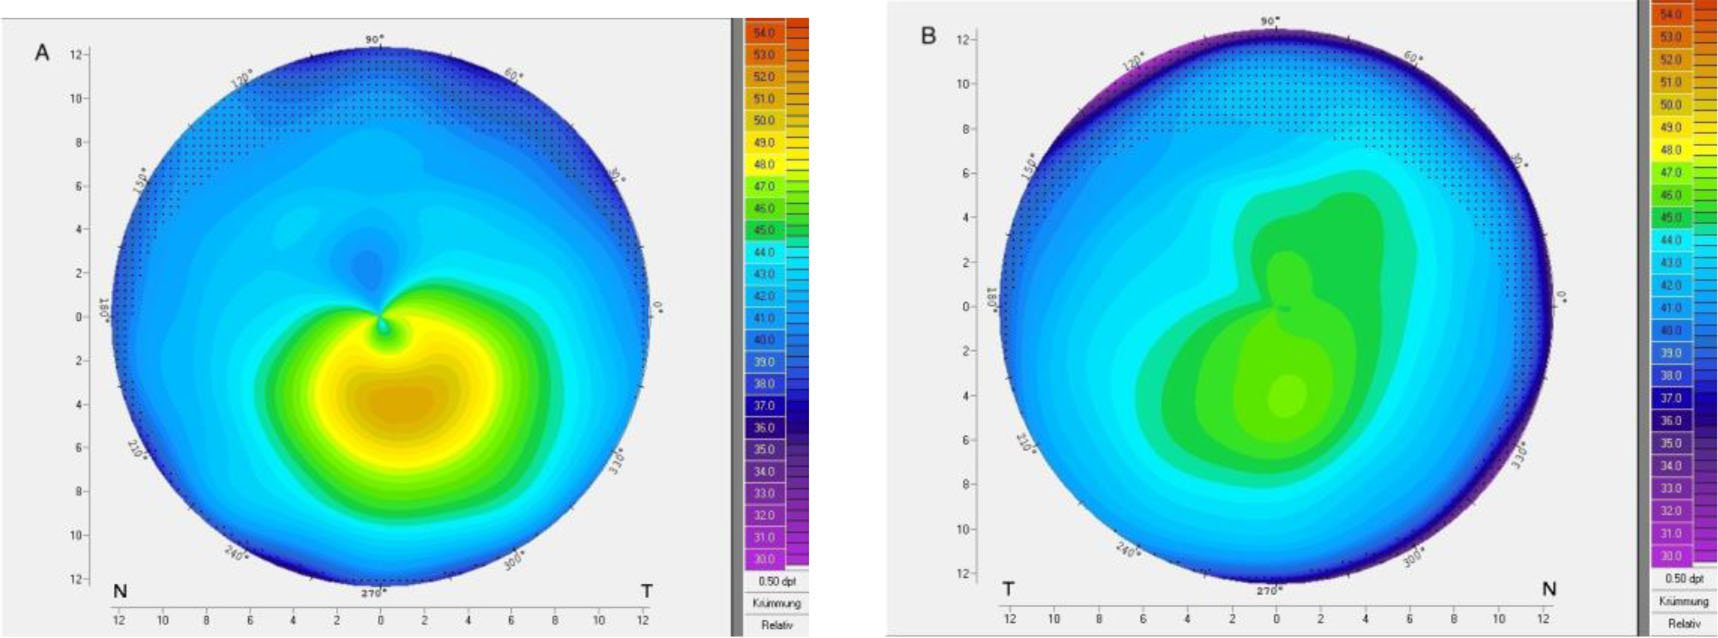 Corneal topography of patient 31 with very asymmetric keratoconus showing (A) ectasia and (B) regular topography in the fellow eye.